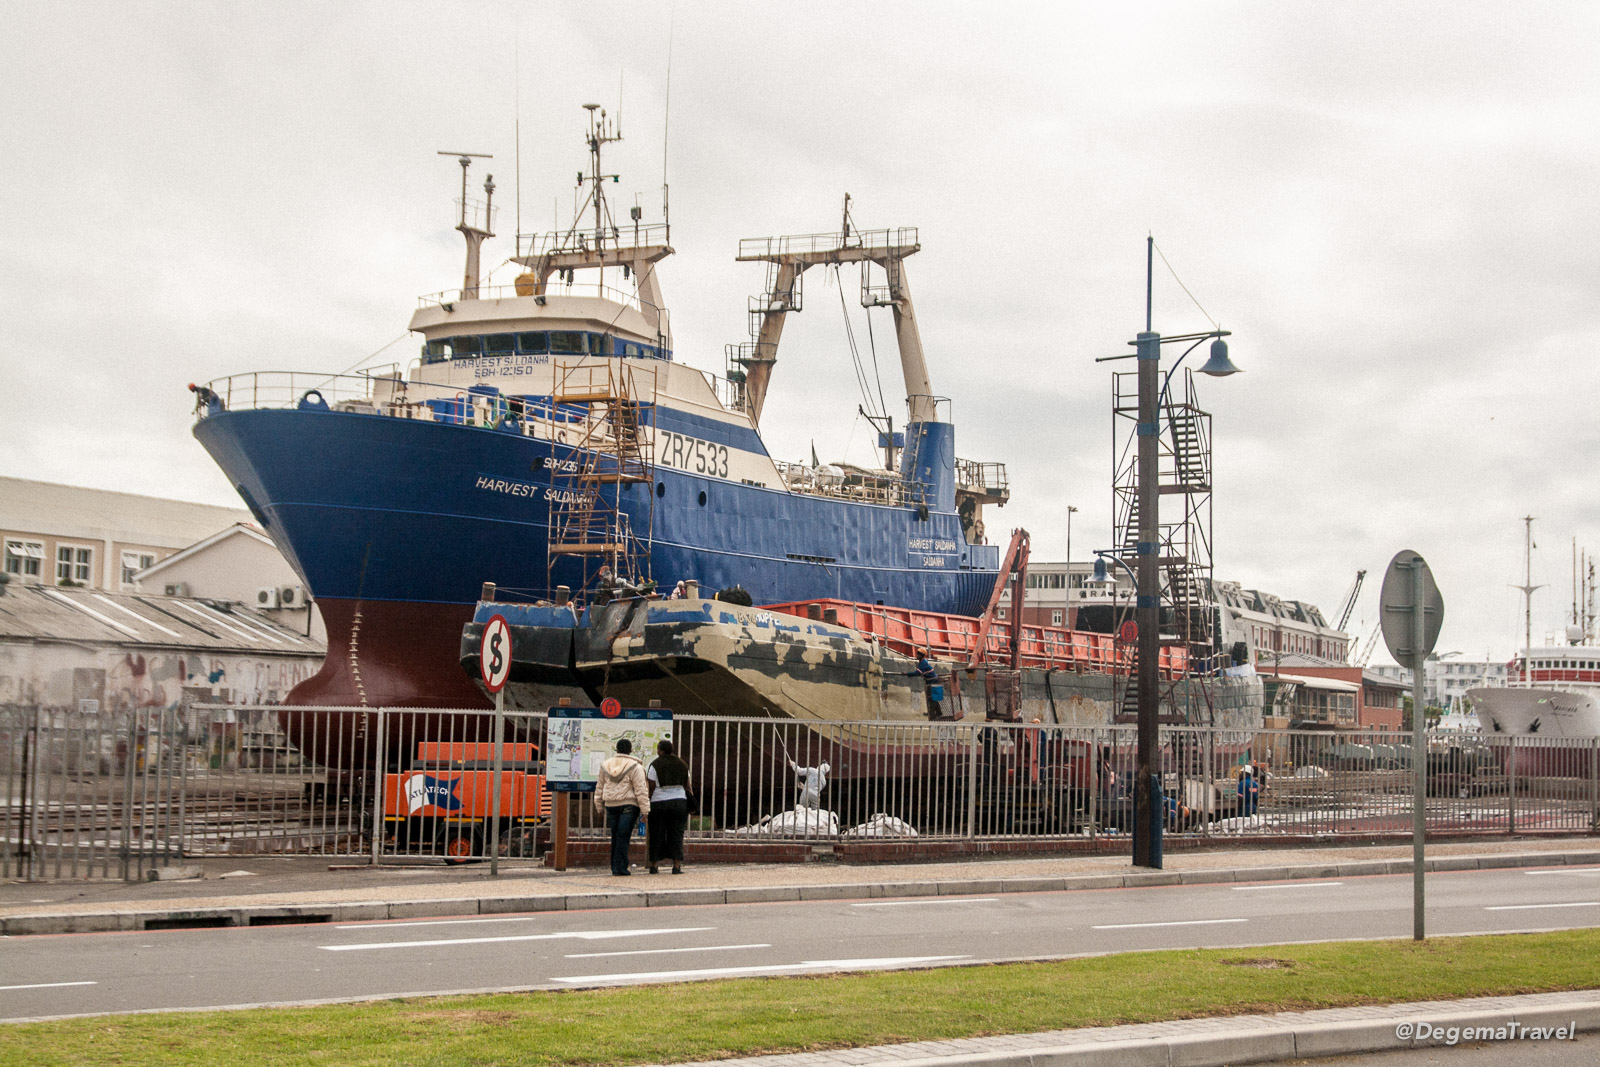 A large ship on hardstanding in Cape Town, South Africa